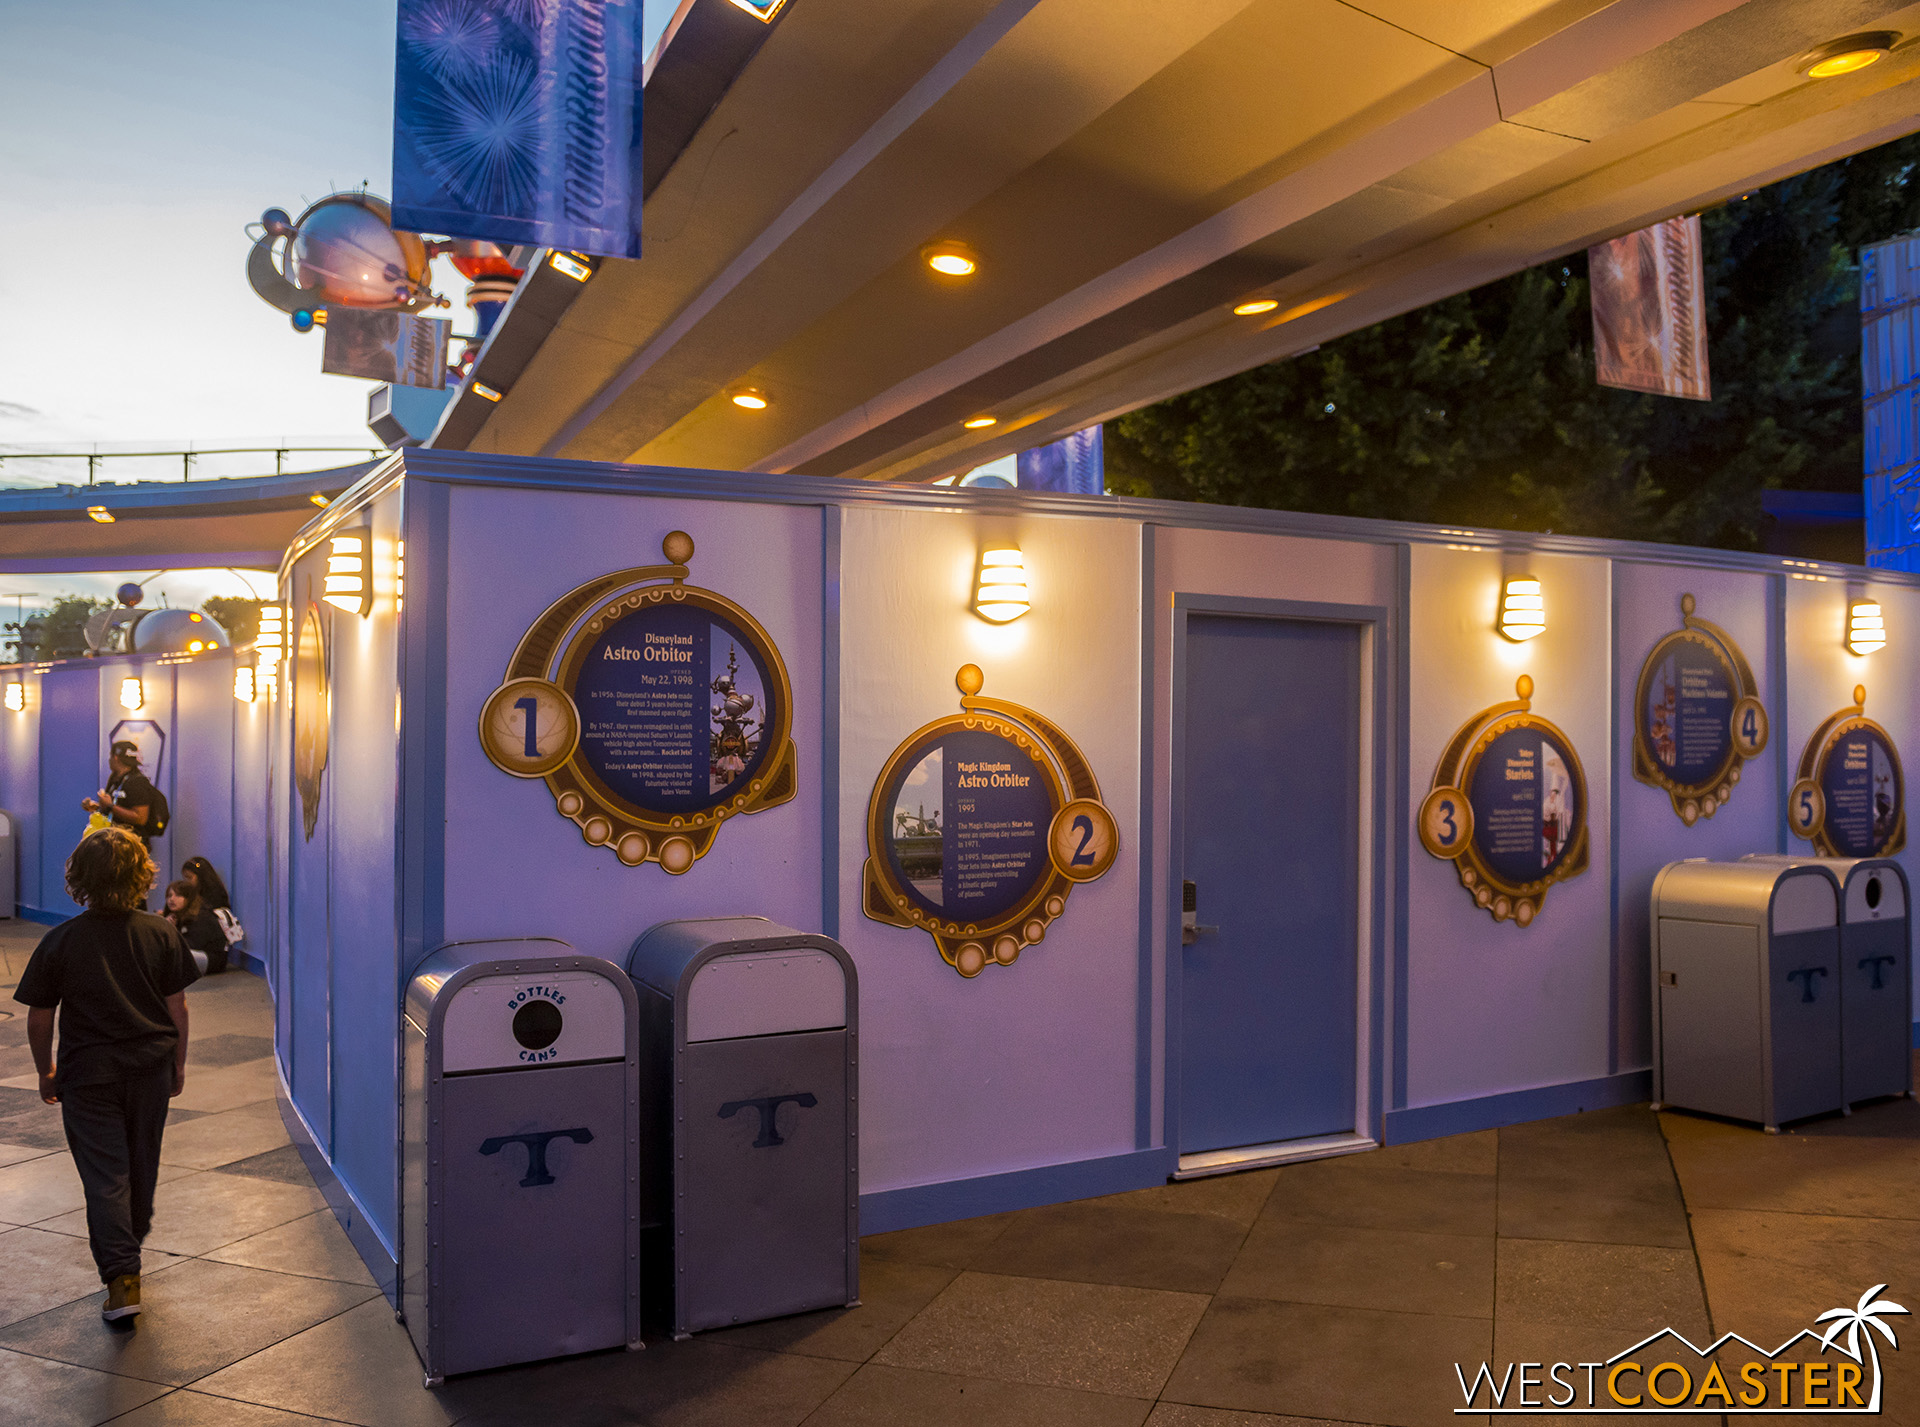 The Astro Orbitor will be back in a couple months (or so).